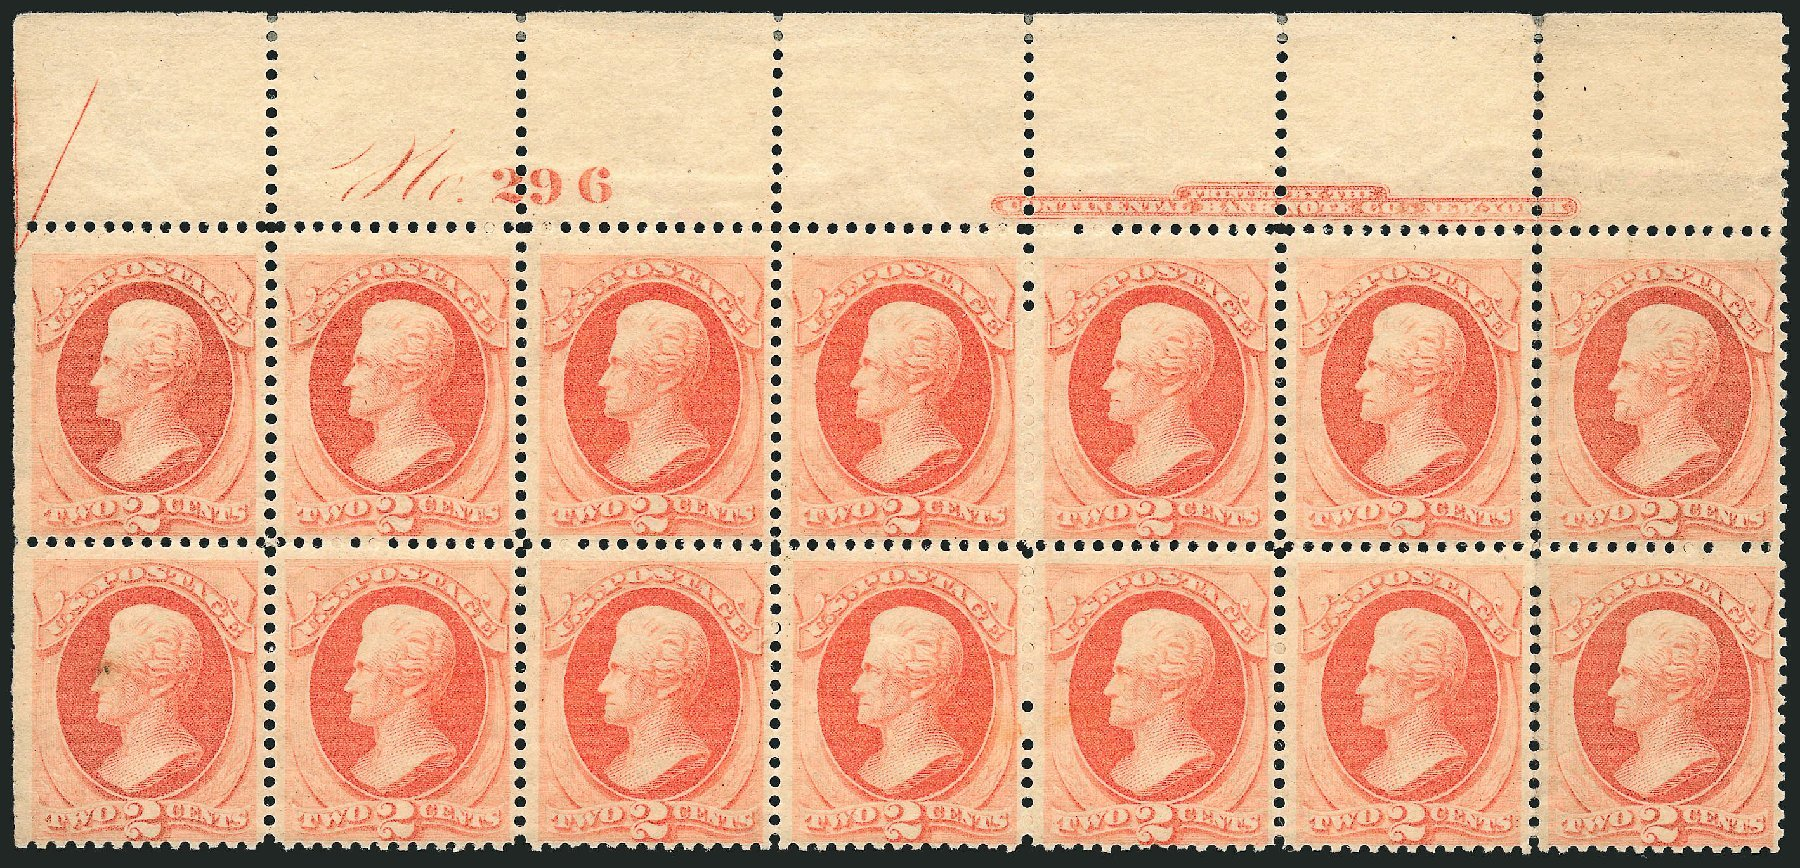 US Stamp Values Scott # 183 - 2c 1879 Jackson. Robert Siegel Auction Galleries, Nov 2014, Sale 1084, Lot 3446